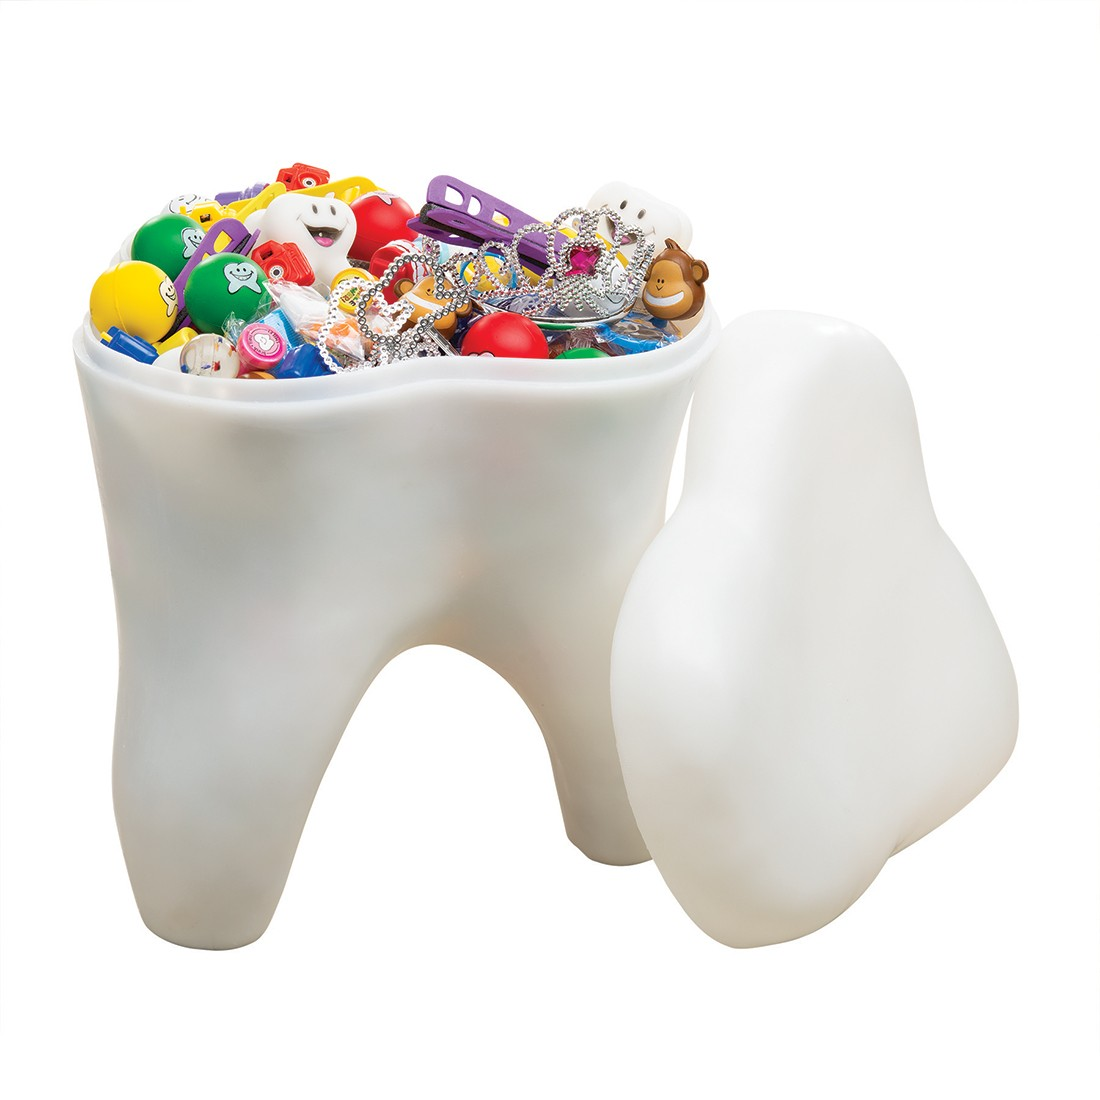 Tooth Stool Treasure Chest [image]